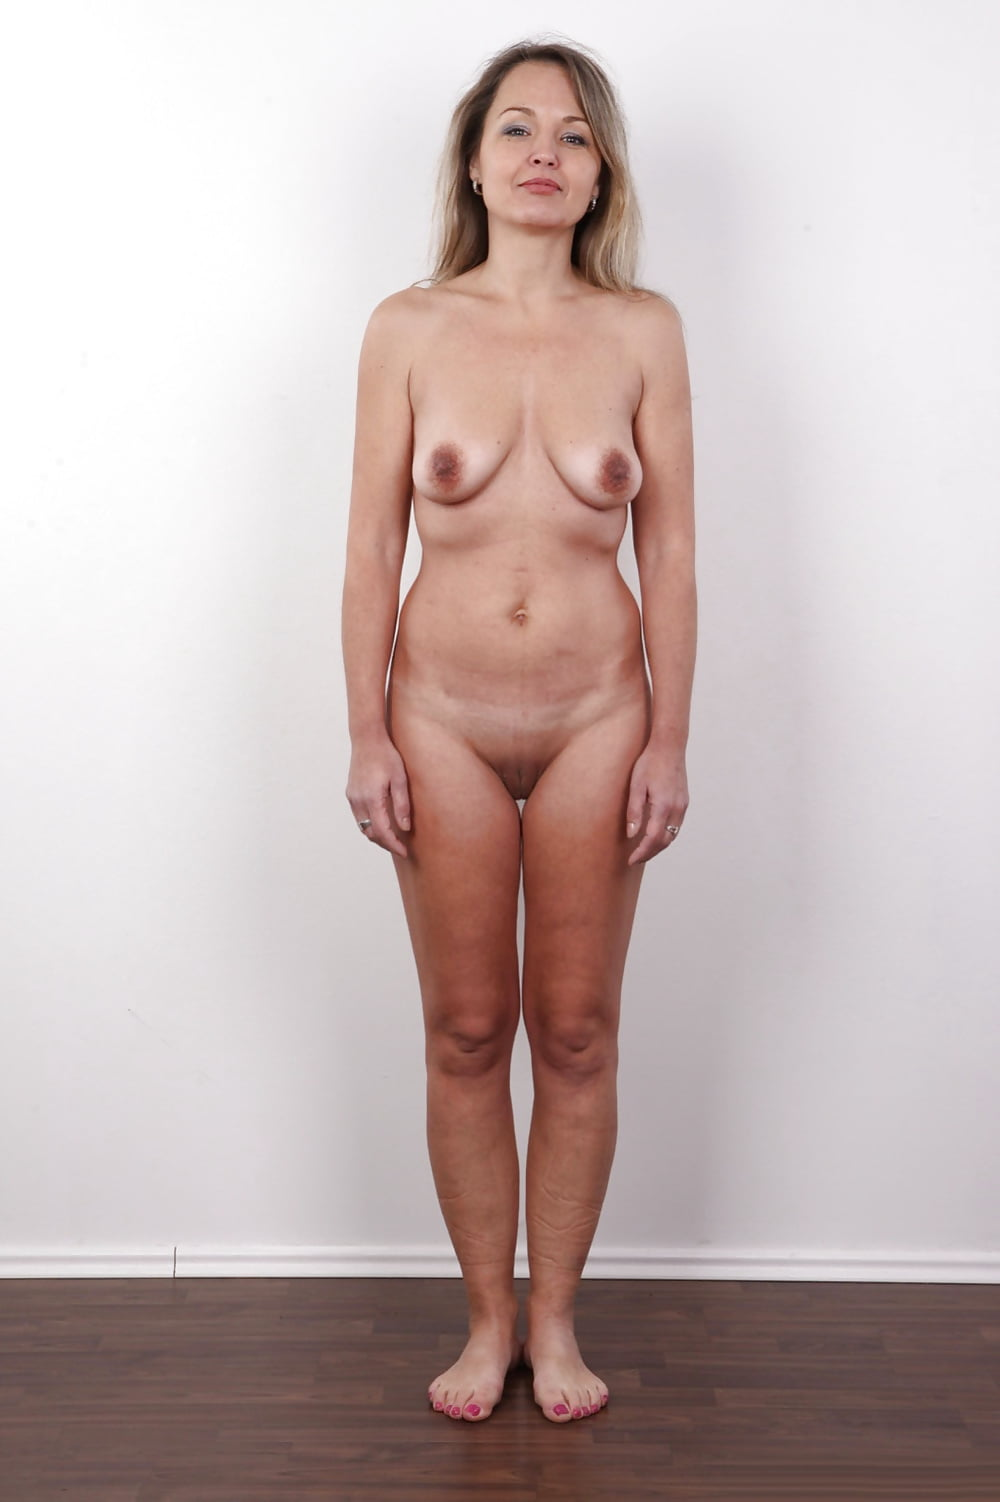 Whores From The Czech Republic 26 - 25 Pics - Xhamstercom-5785